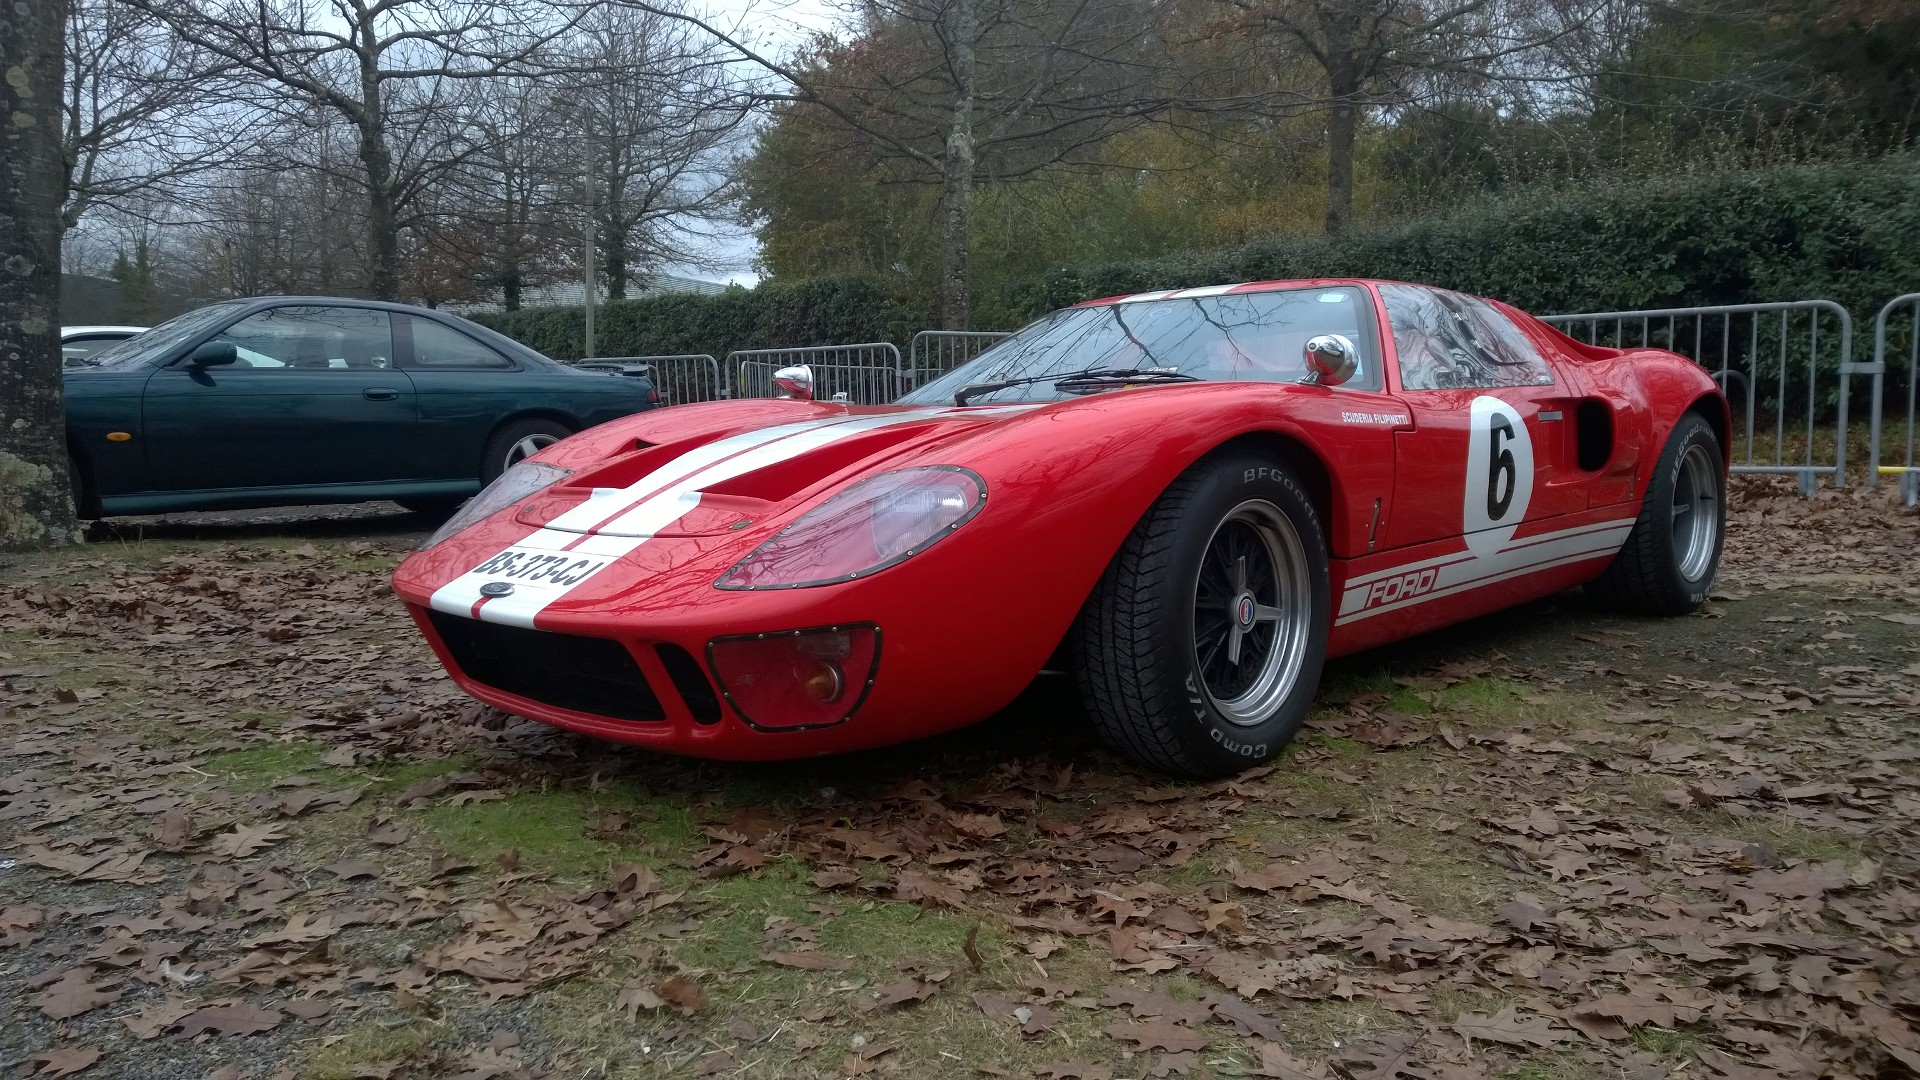 DM - photo - Ford GT40 - profil avant / front side-face - Ouest Motors Festival 2015 Lorient